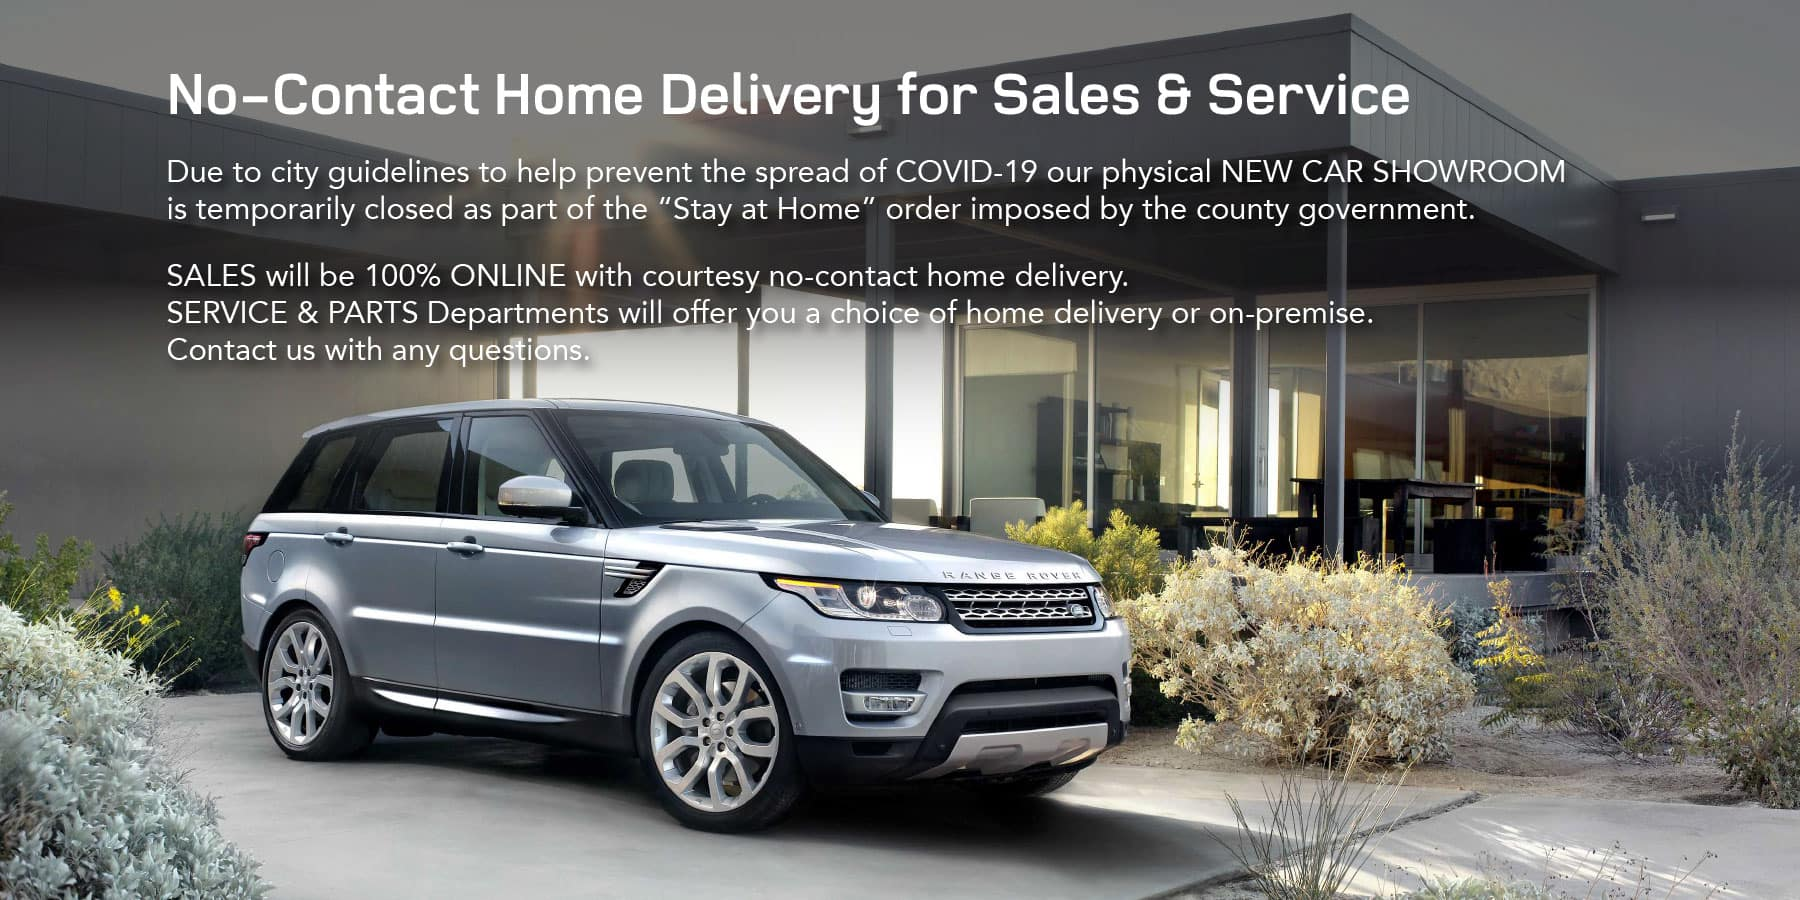 Autobahn Land Rover Fort Worth   New Car Showroom now CLOSED, SALES Online